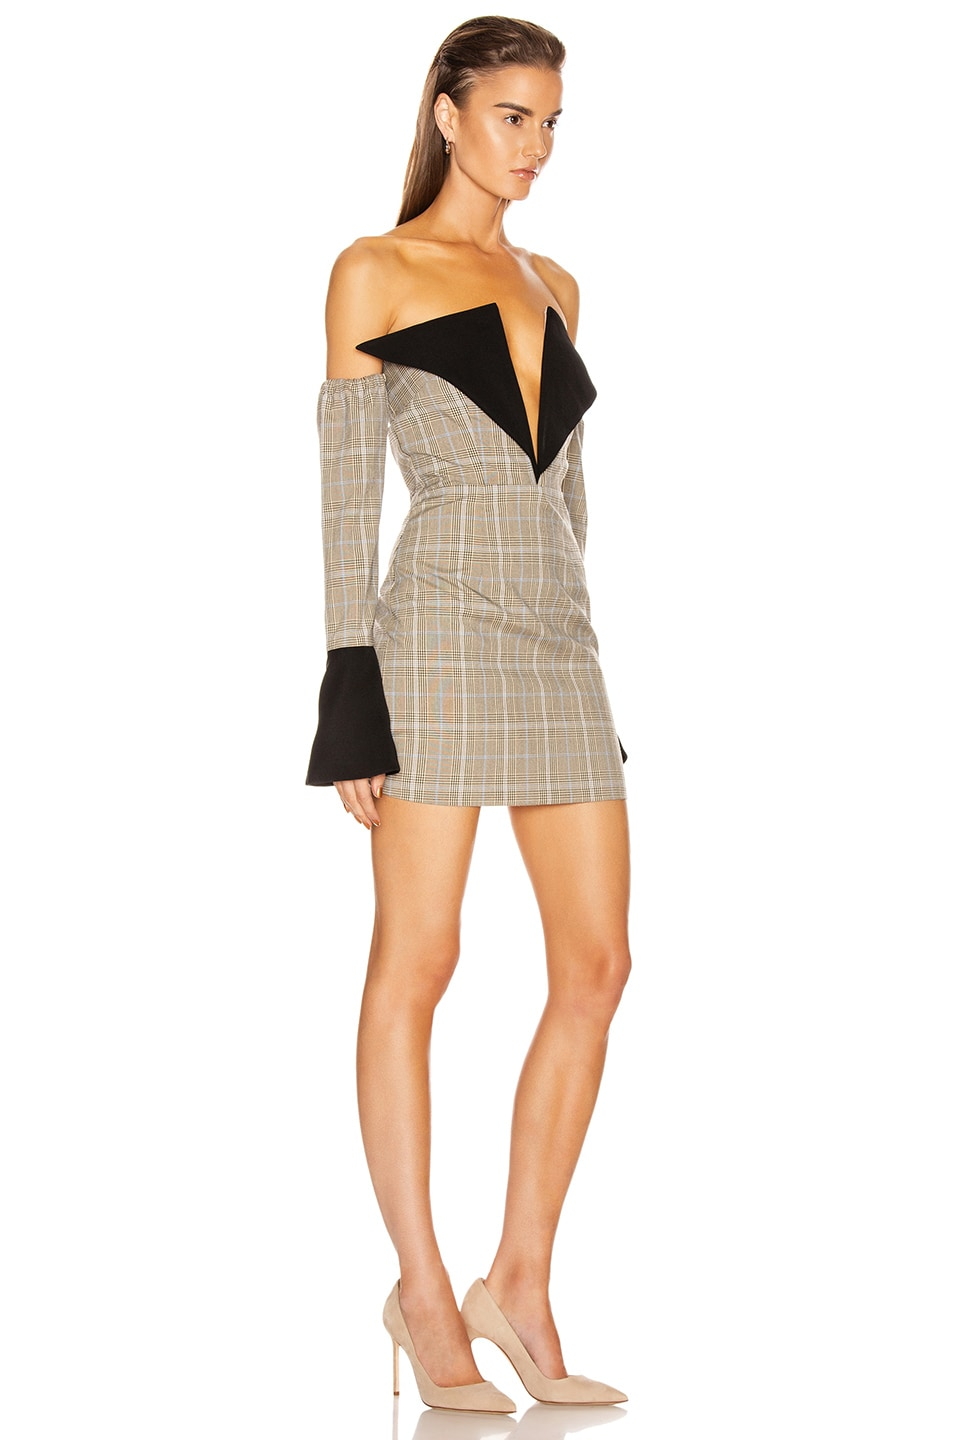 Image 2 of Atoir Sharp Edges Dress in Tan, Blue Check & Black